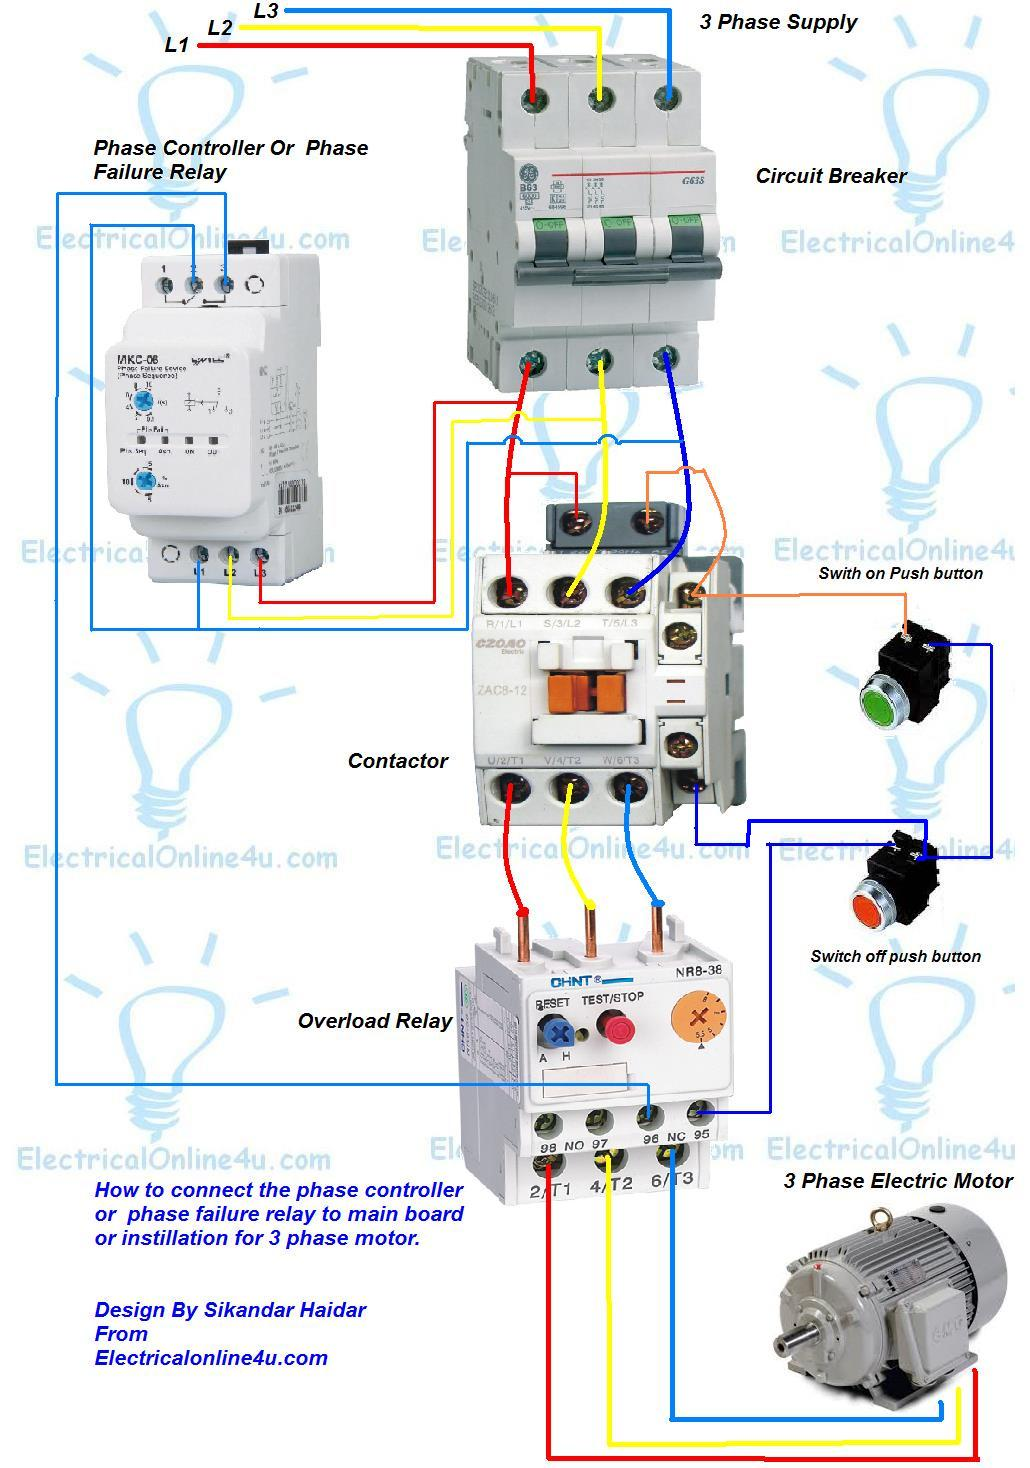 Phase%2Bfailure%2Brelay%2B %2Bphase%2Bcontroller%2Binstilaion%2Bin%2B3%2Bphase%2BMain%2Bboard%2Bor%2Bfor%2B3%2Bphase%2Bmotor phase controller wiring phase failure relay diagram electrical controller wire diagram for 3246e2 lift at crackthecode.co